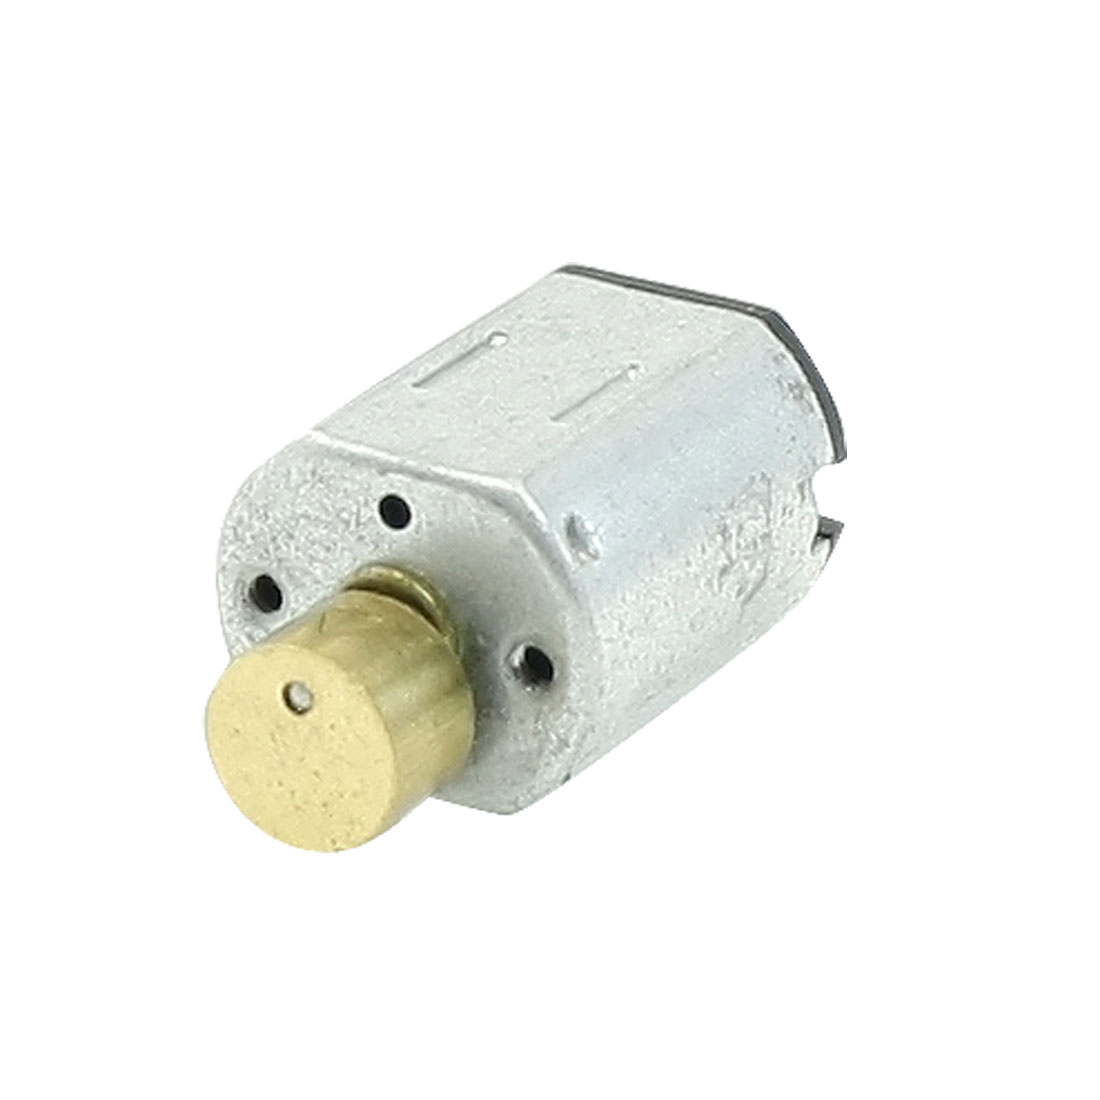 Silver-Tone-Shell-Mini-Vibrating-Vibration-Motor-DC-1-5V-1200RPM-N20